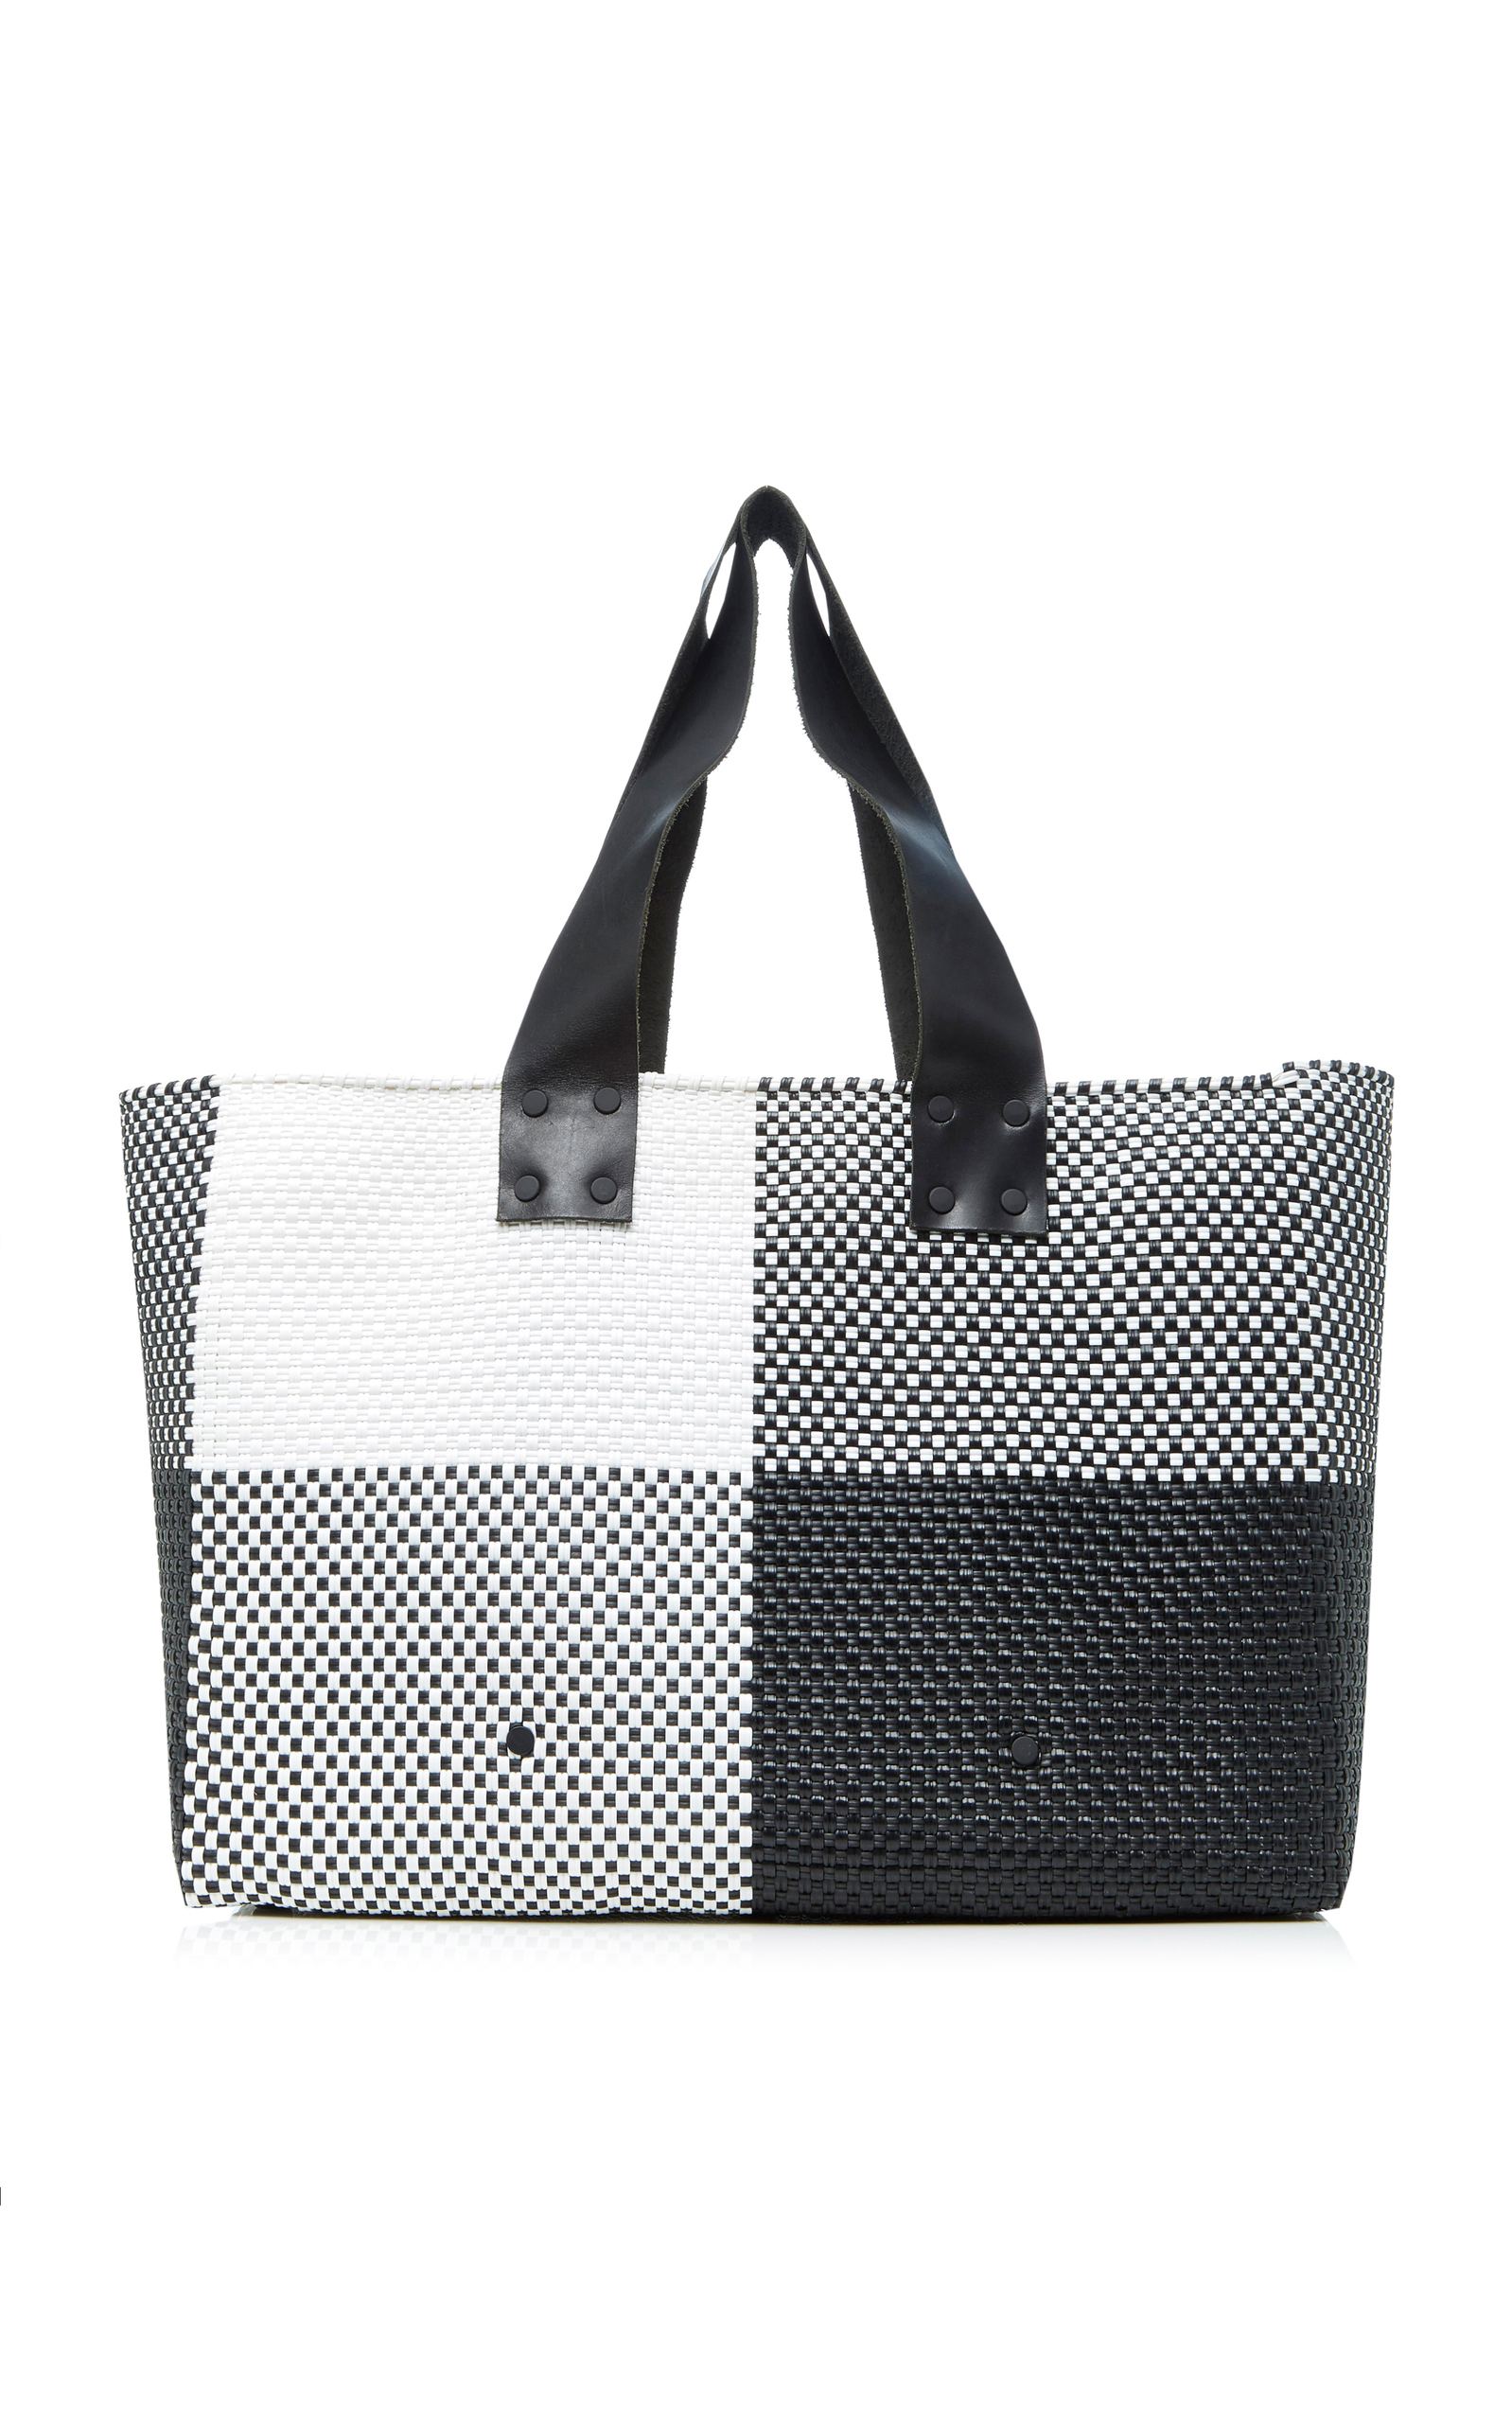 Folded Tote With Leather Handles Truss jRxCN7